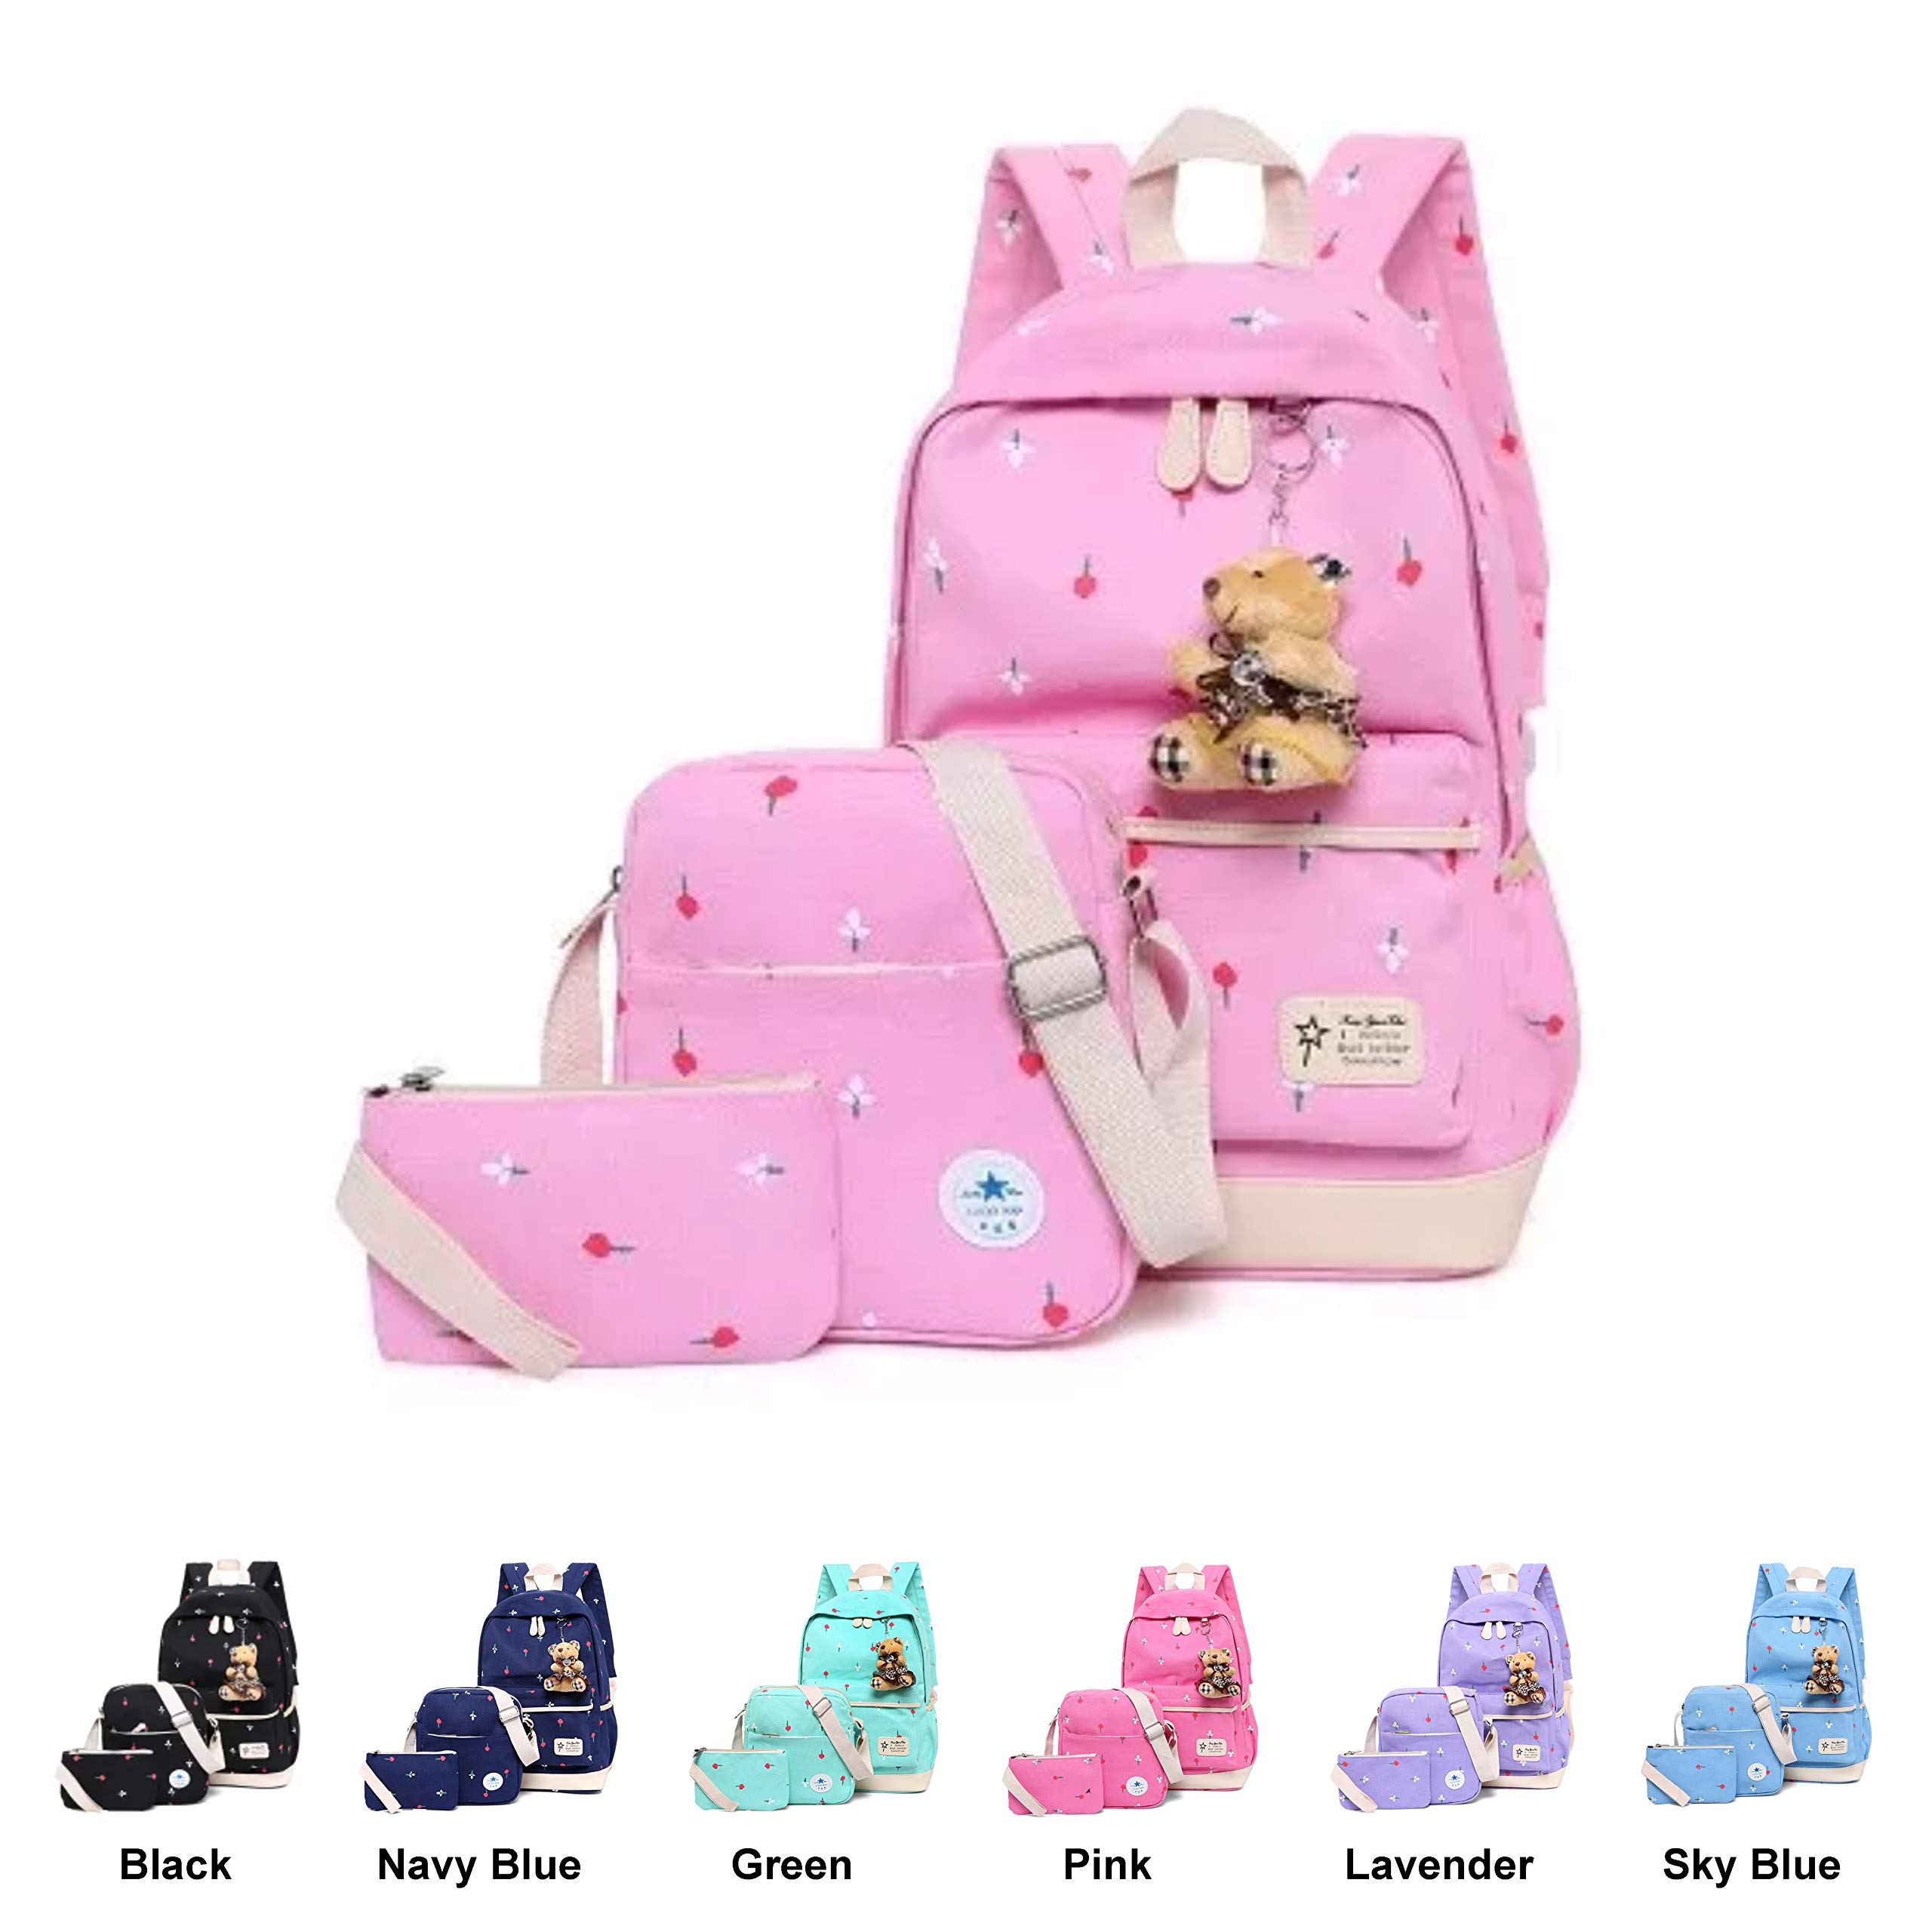 Queenie - Cotton Canvas School Backpack Casual Daypack Shoulder Bag for Kids Girls Boys (6111 Pink)